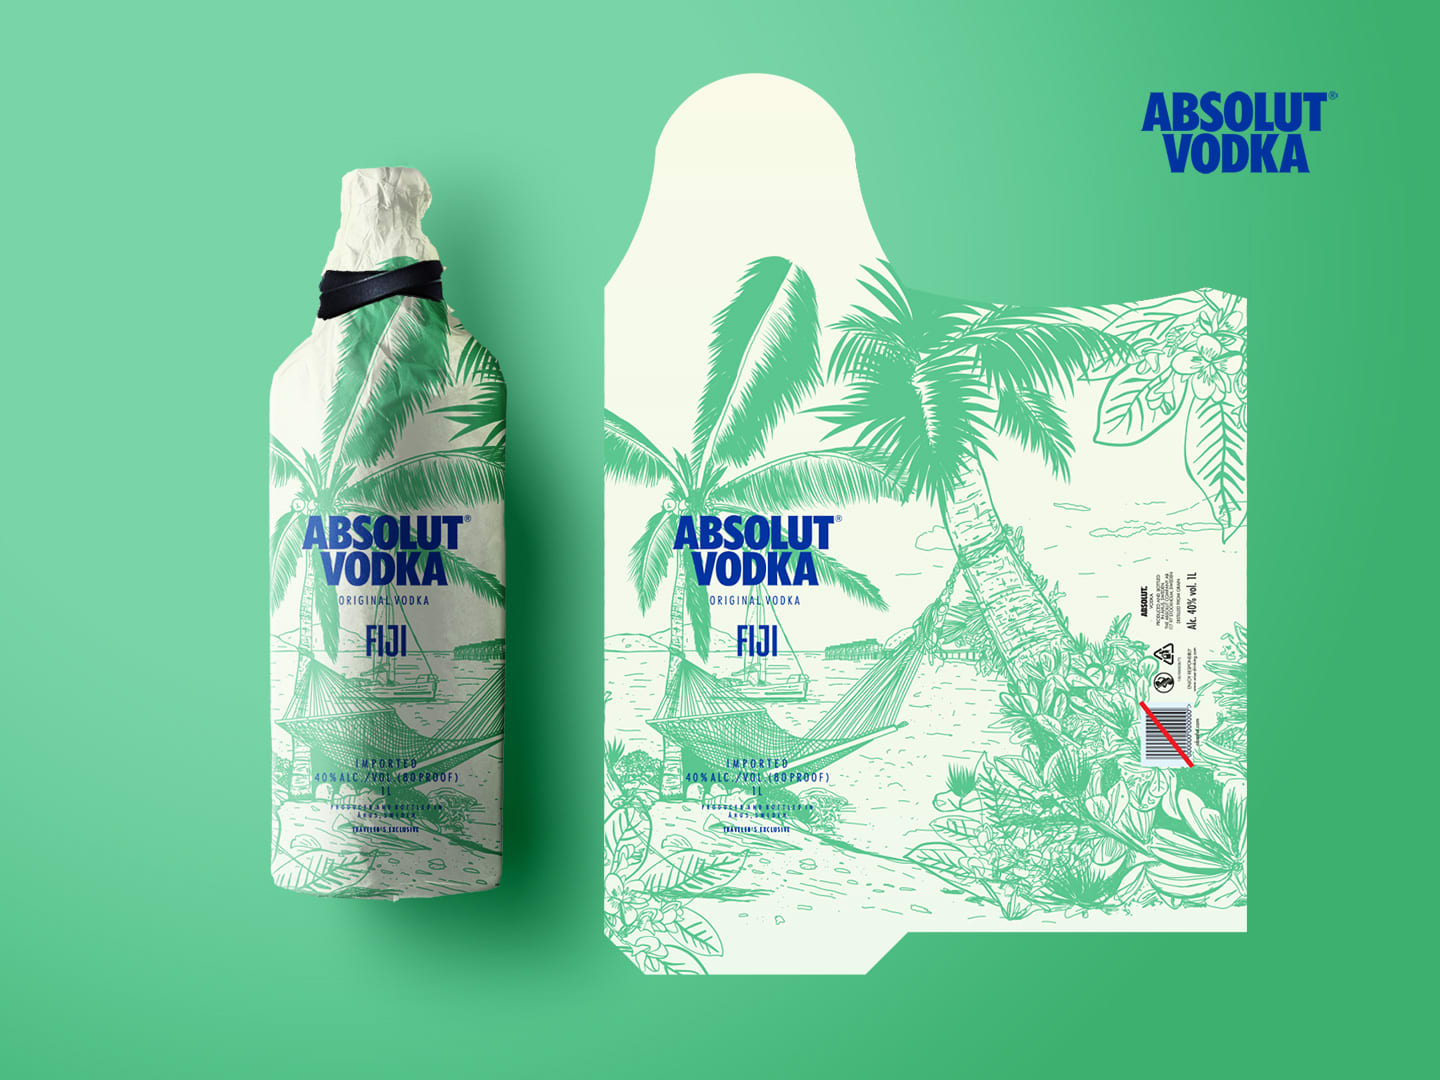 Limited Edition bottle bags for Absolut Vodka Fiji